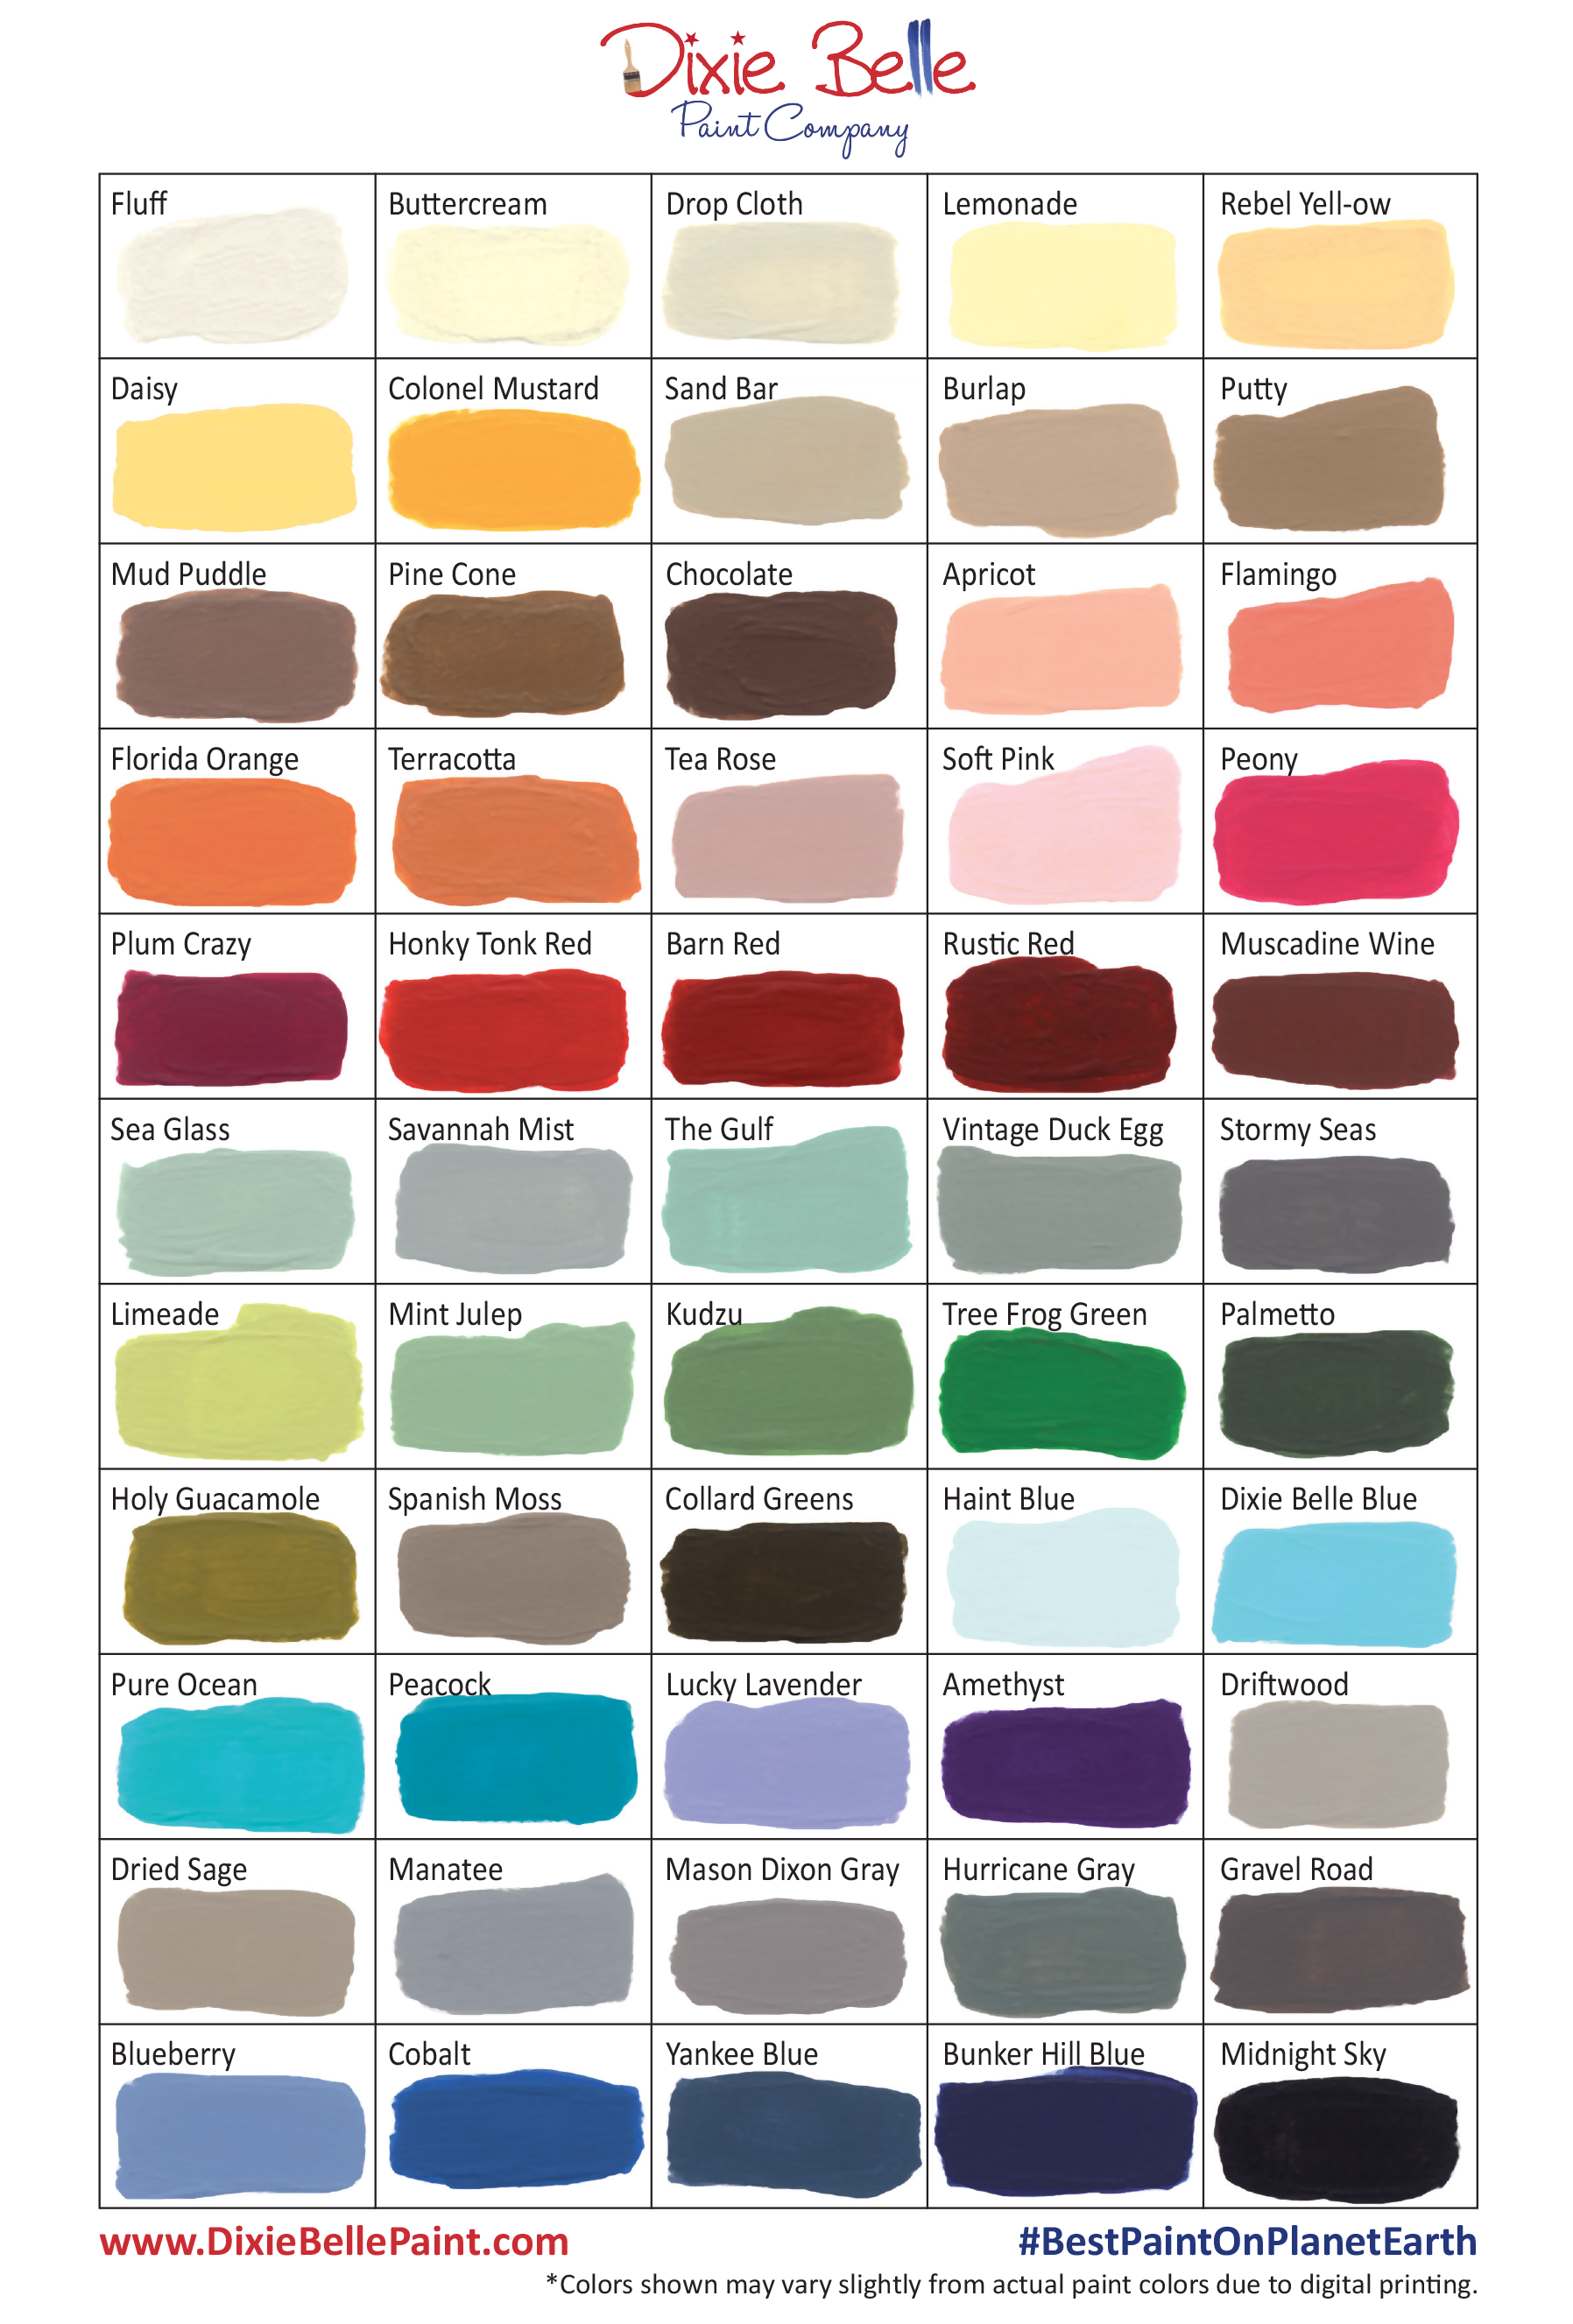 Dixie Belle Paint Company Now Has 55 Awesome Chalk Mineral Paint Colors To Choose From Not To M Dixie Belle Paint Painted Furniture Colors Chalk Paint Colors